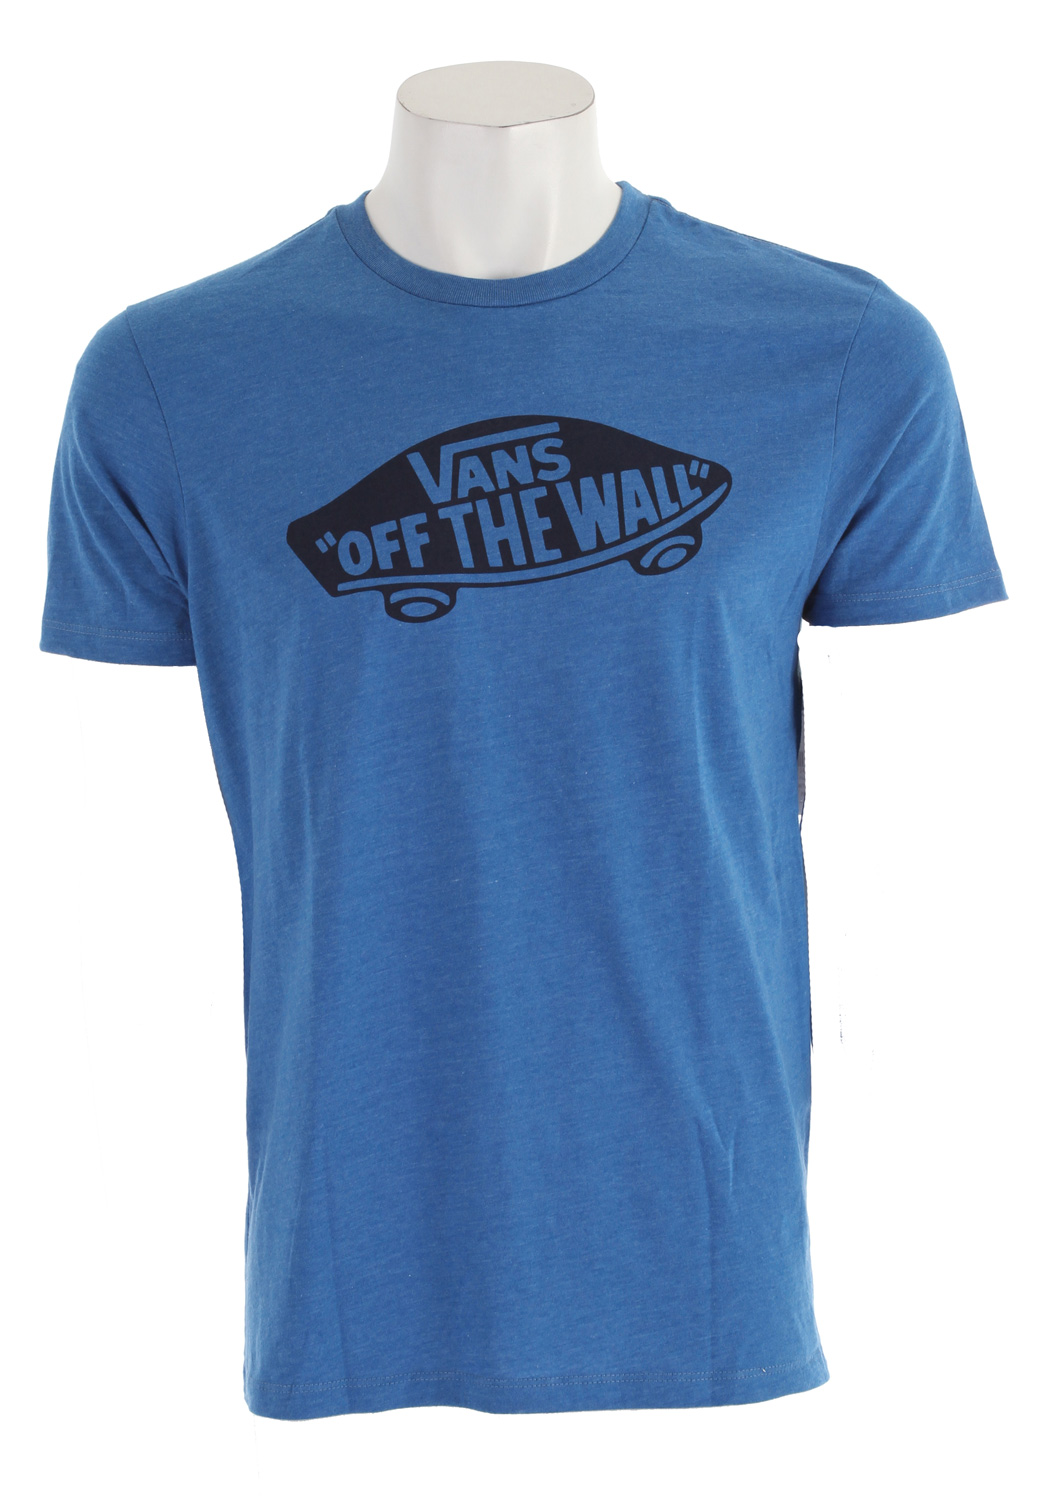 Skateboard Key Features of The Vans OTW T-Shirt: Regular Fit Crew Neck Short Sleeve 100% Cotton Custom Fit 30/1 combed ringspun cotton crew neck tee shirt 50% Cotton 50% Polyester for heathered colorways Front chest screen print Clip label on back hem - $11.95